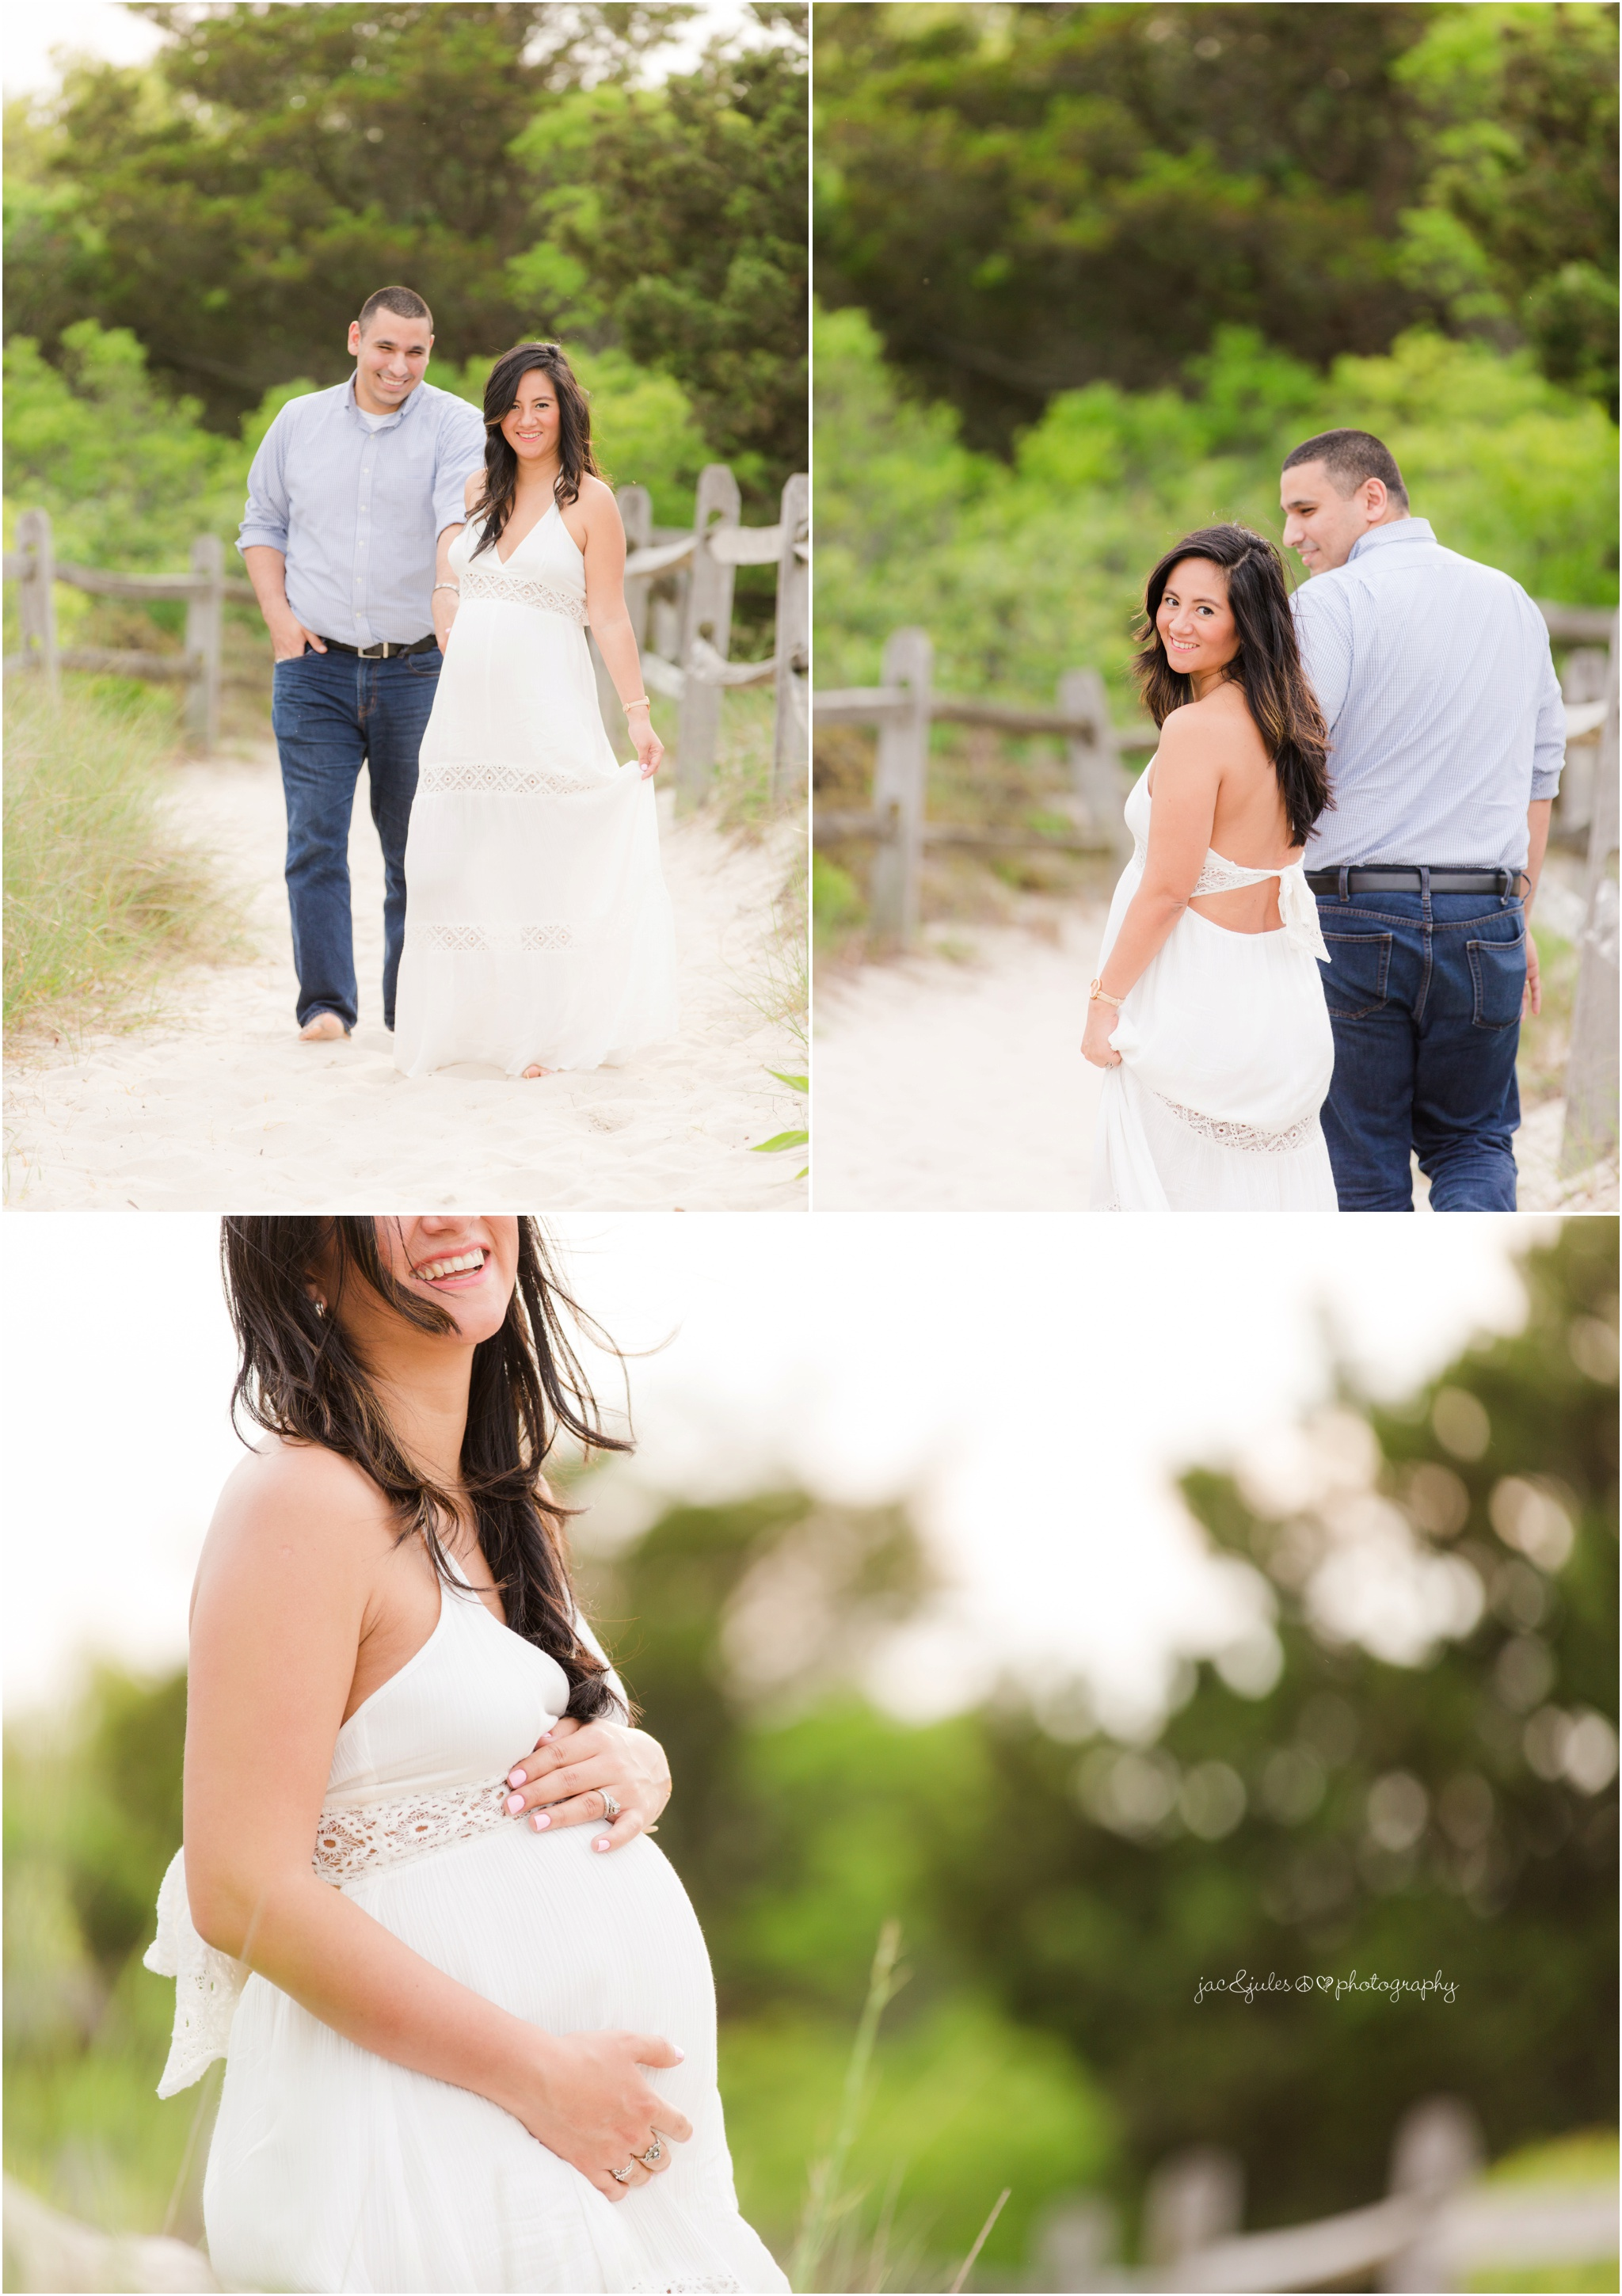 seaside-park-maternity-photographer_0003.jpg